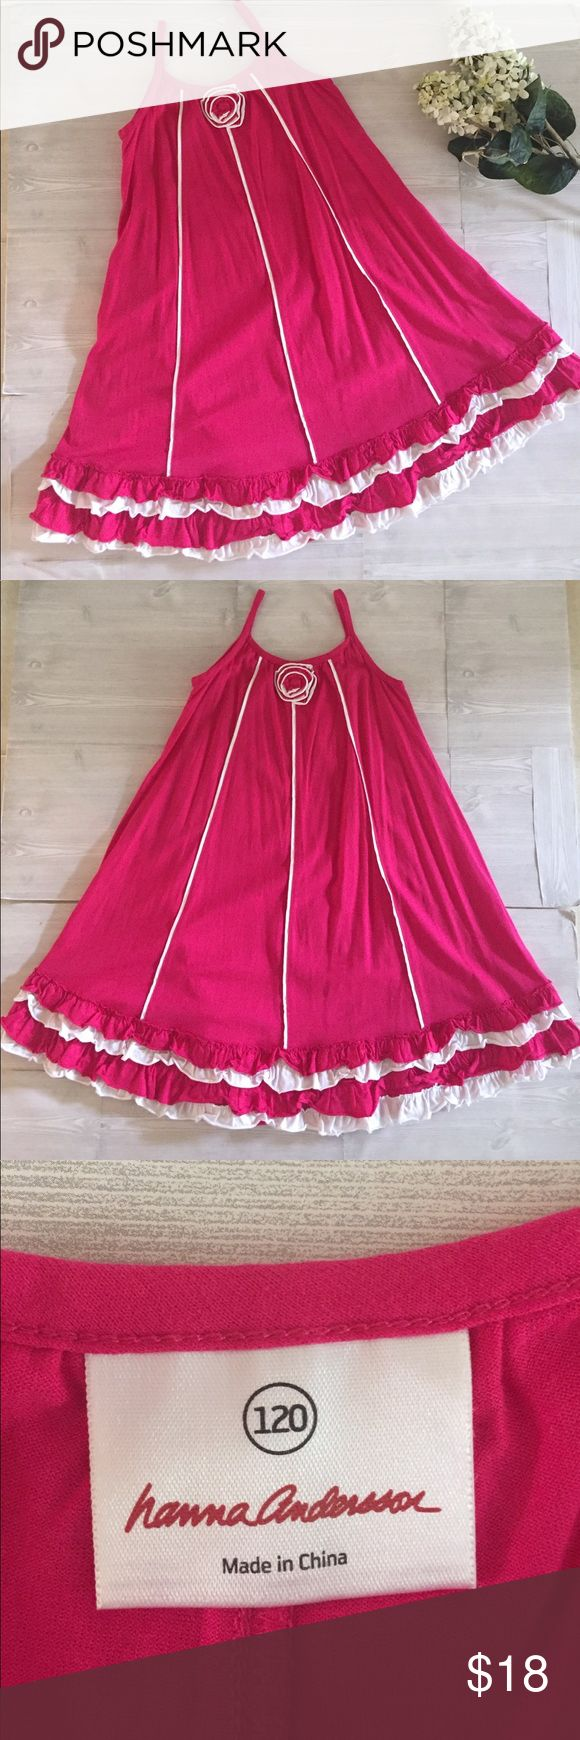 Hanna Andersson Fushia Dress Size 120 6/7 Hanna Andersson Fushia Dress Size 120. Excellent condition, perfect Twirl Dress. Features Ruffle bottom and rosette Ruffle flower on front. See Hanna Andersson size chart in pics for sizing. Hanna Andersson Dresses